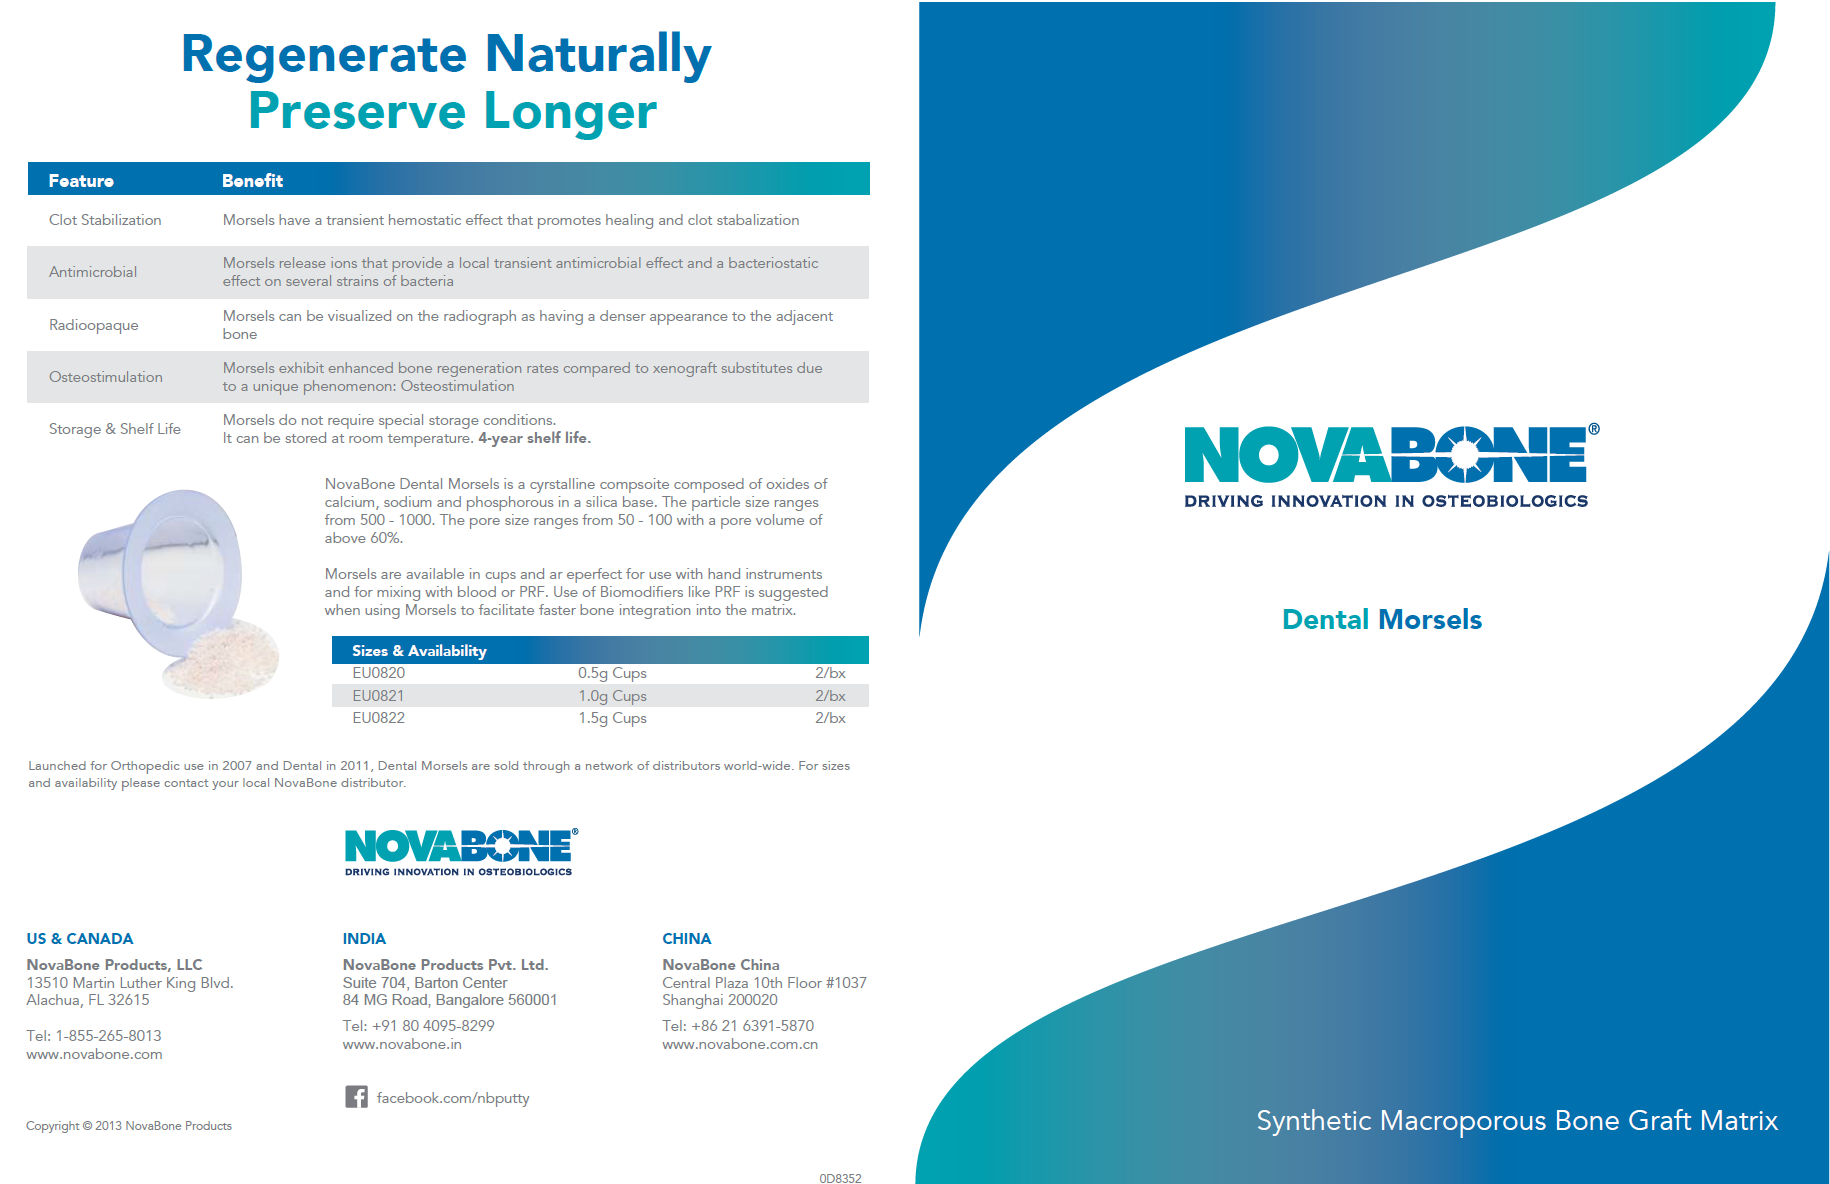 NovaBone Dental Morsels is a cyrstalline composite composed of oxides of calcium, sodium and phosphorous in a silica base.